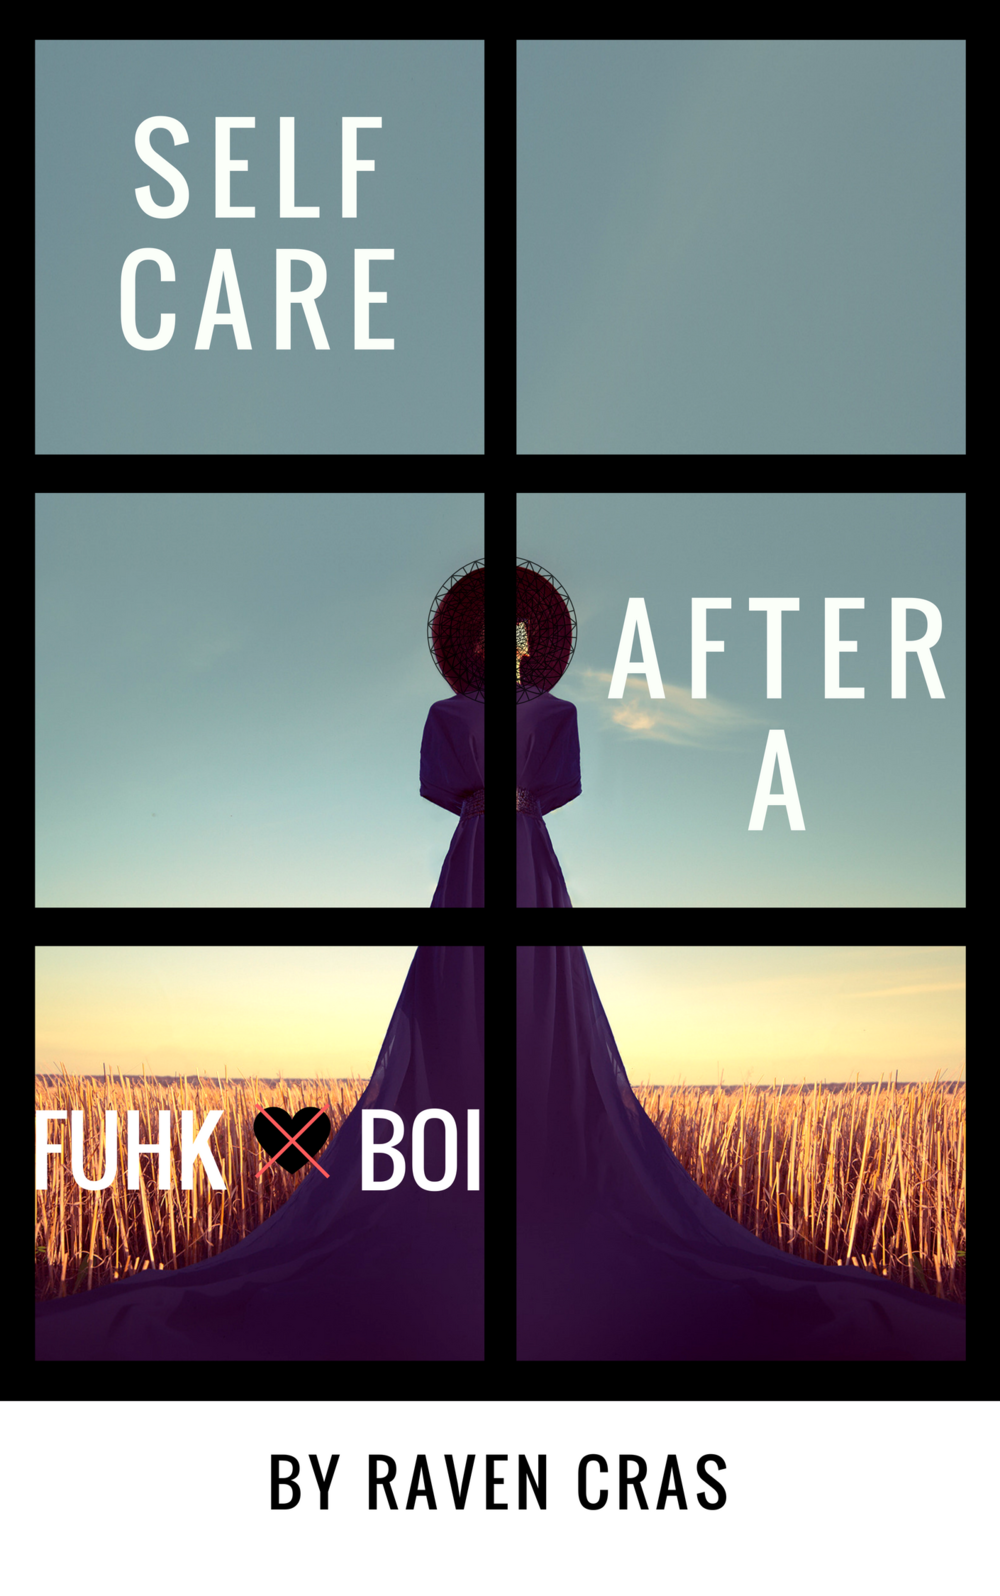 Emotional Justice - The SelfCare After Series presents Self Care After a Fuhk Boi : a book of prose, poems and selfcare tips. The tips are collected from women across cultures. Emotional justice is the creation and work of Esther Armah; she has been doing this work for almost 10 years in connection with Black liberation, and we build off of her work.